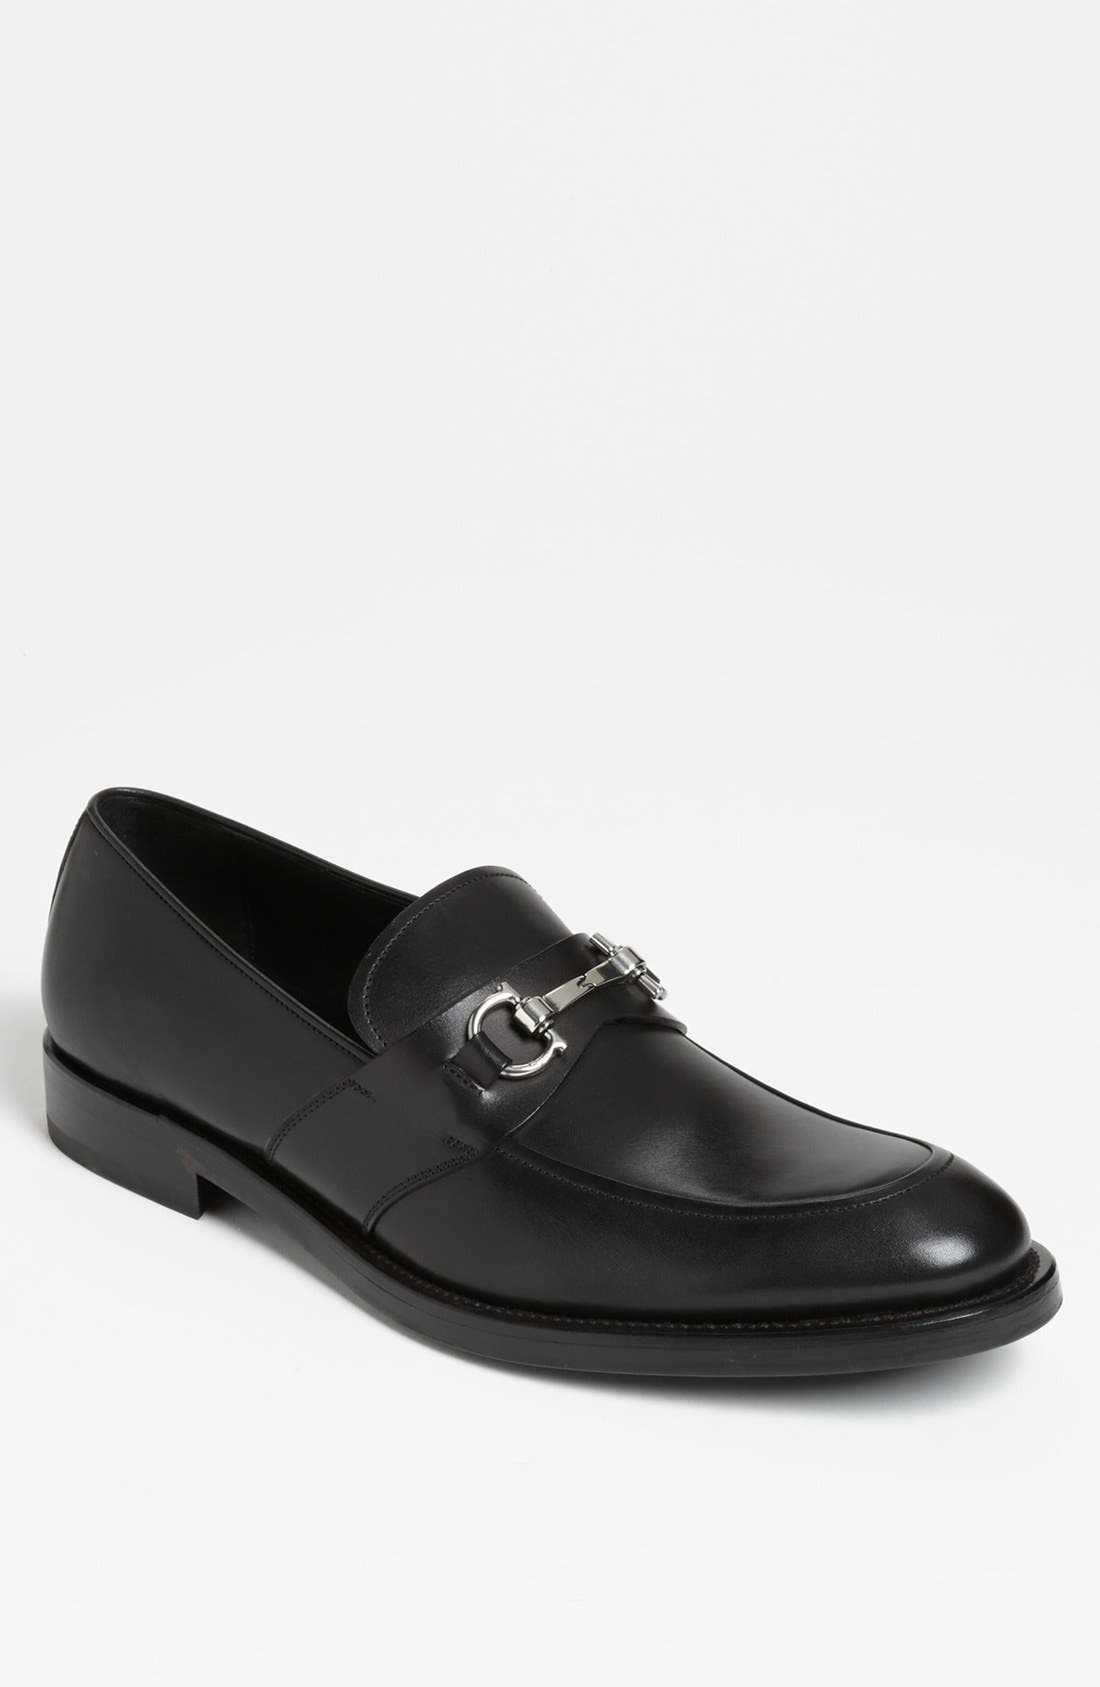 Alternate Image 1 Selected - Salvatore Ferragamo 'Siracusa' Bit Loafer